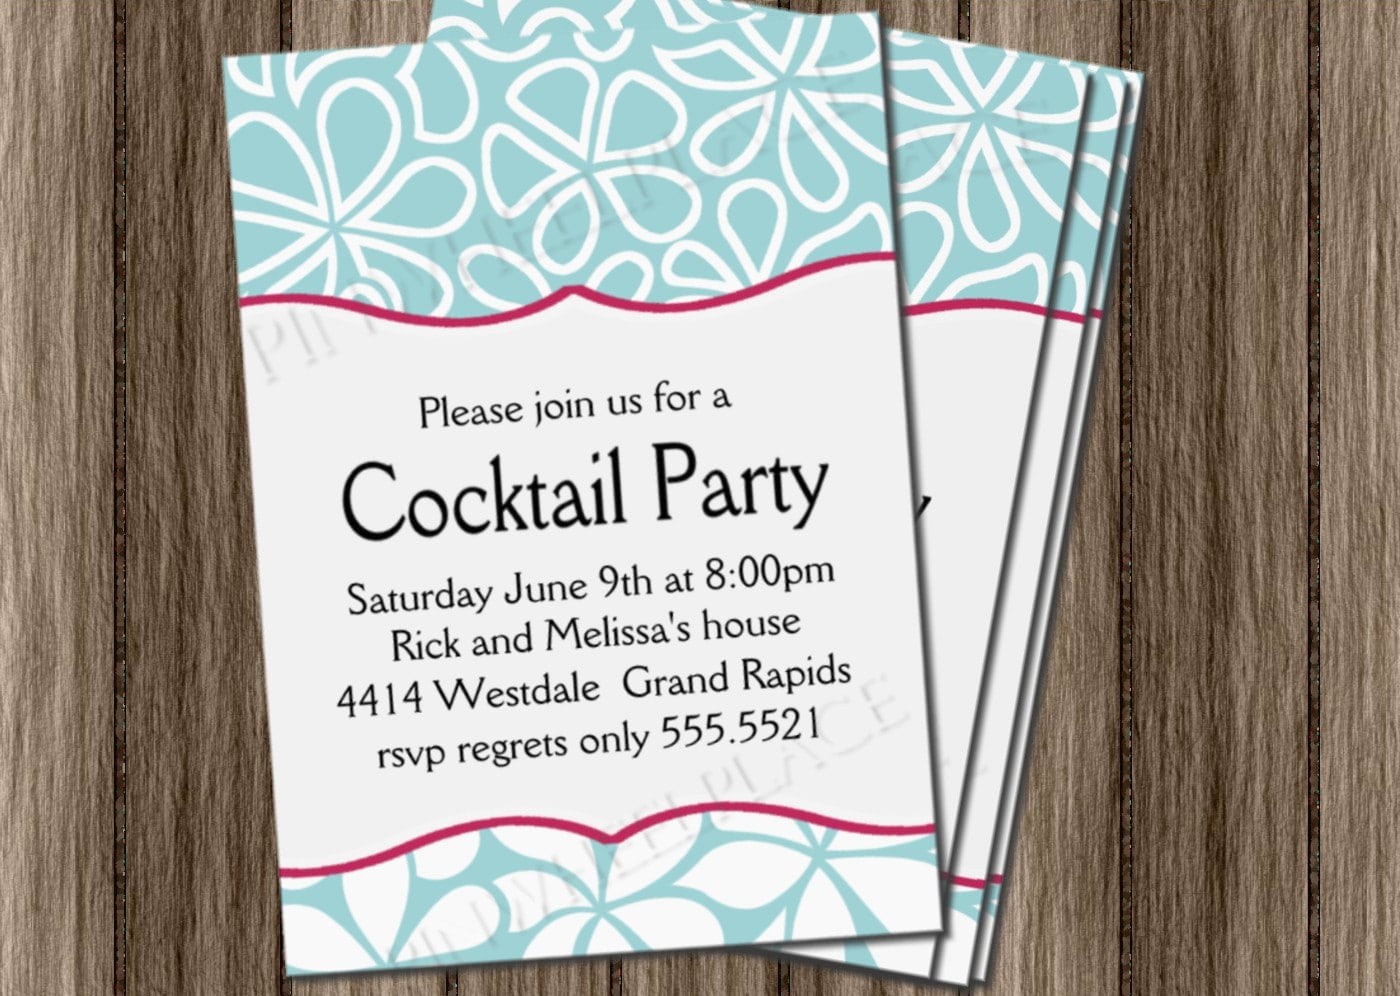 23 Fresh Cocktail Party Invitation Ideas To Inspire You